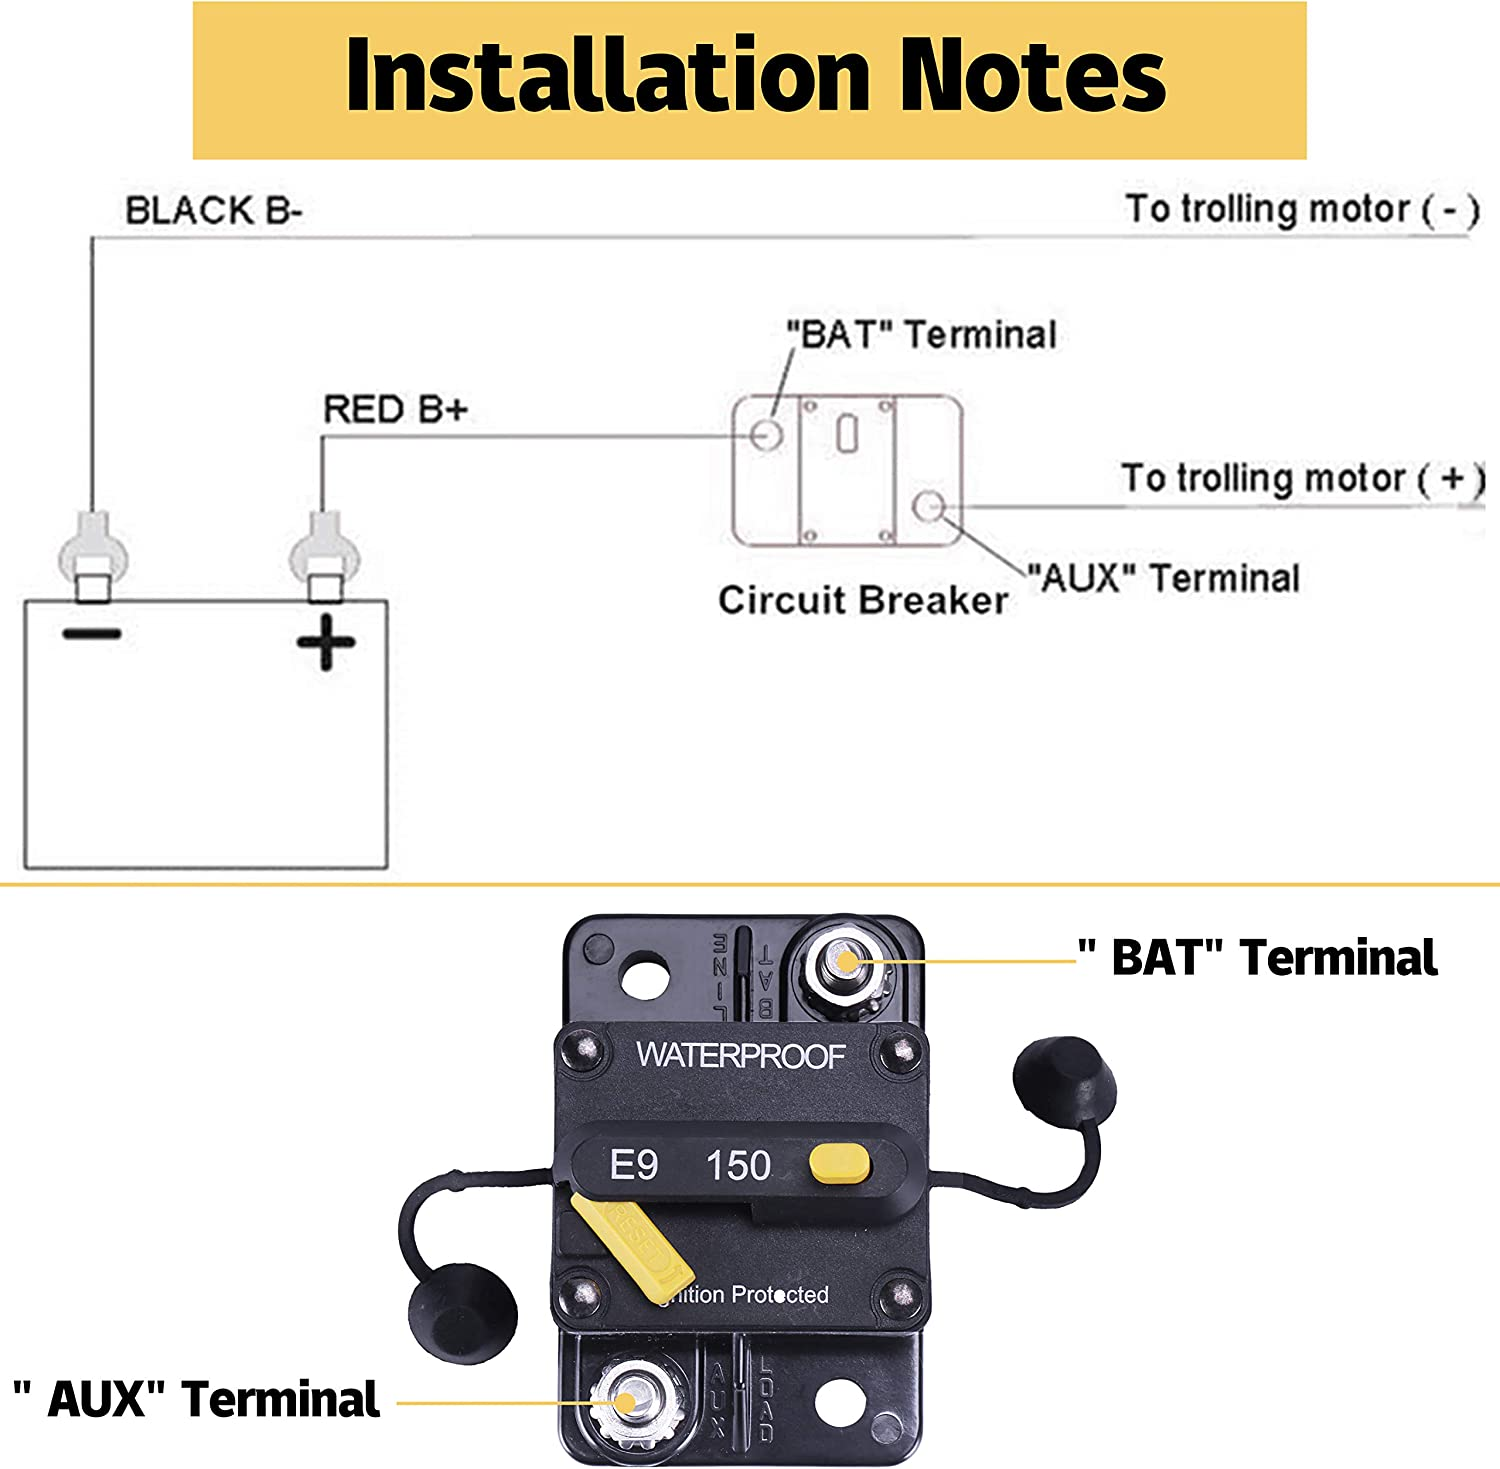 Ships Suitable for Campers 12V-48V DC Circuit Breaker with Manual Reset Waterproof Inline Fuse JUSTTOP 150Amp Circuit Breaker RV etc Trailers